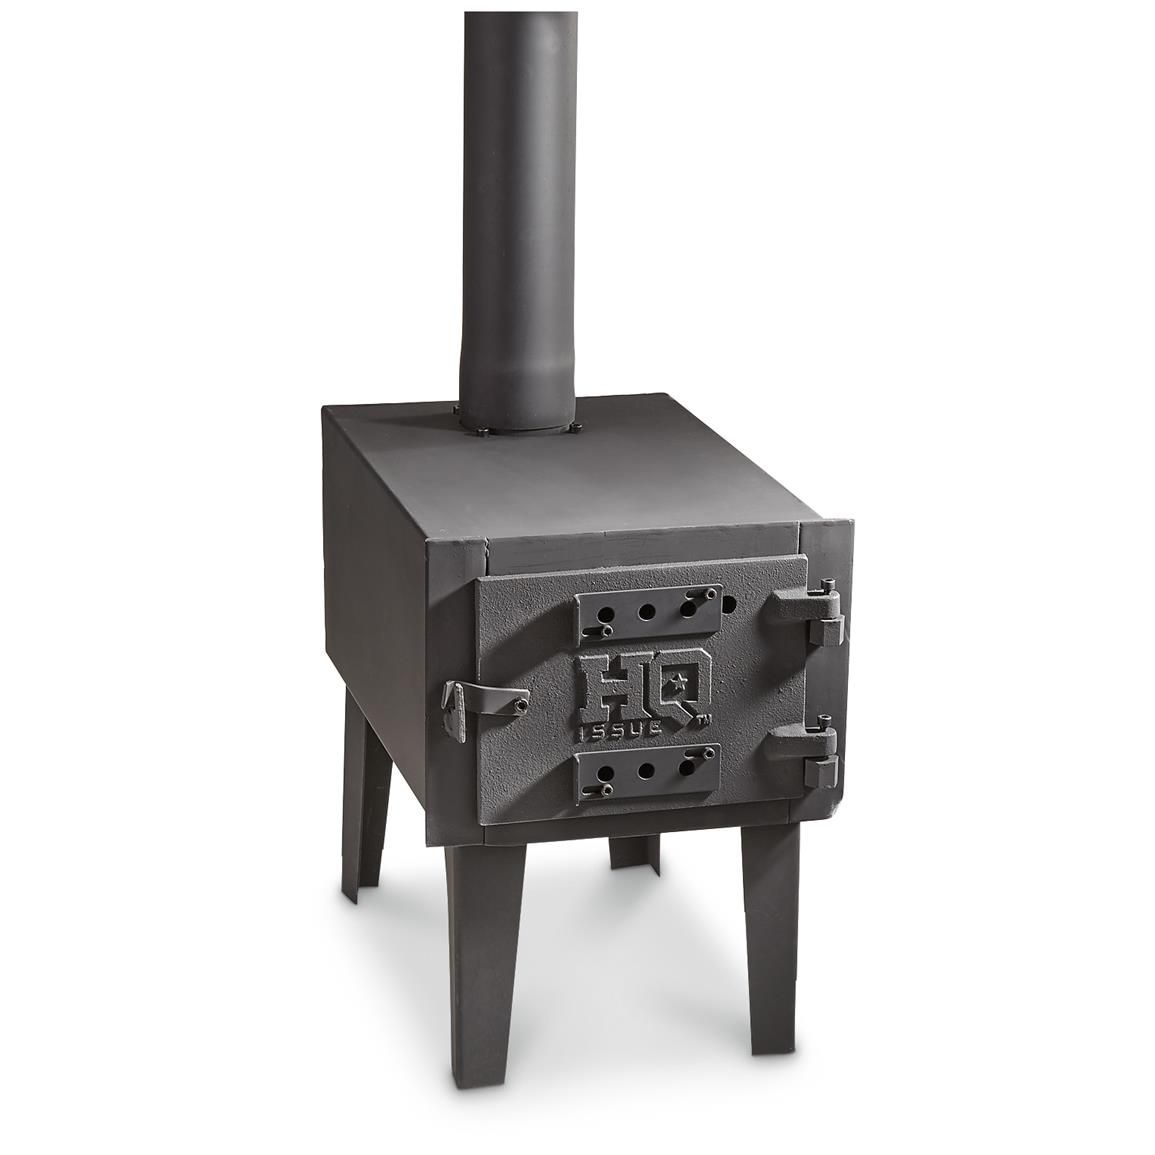 Guide Gear Outdoor Wood Stove  sc 1 st  Pinterest & Guide Gear Outdoor Wood Stove | Stove Woods and Treehouse